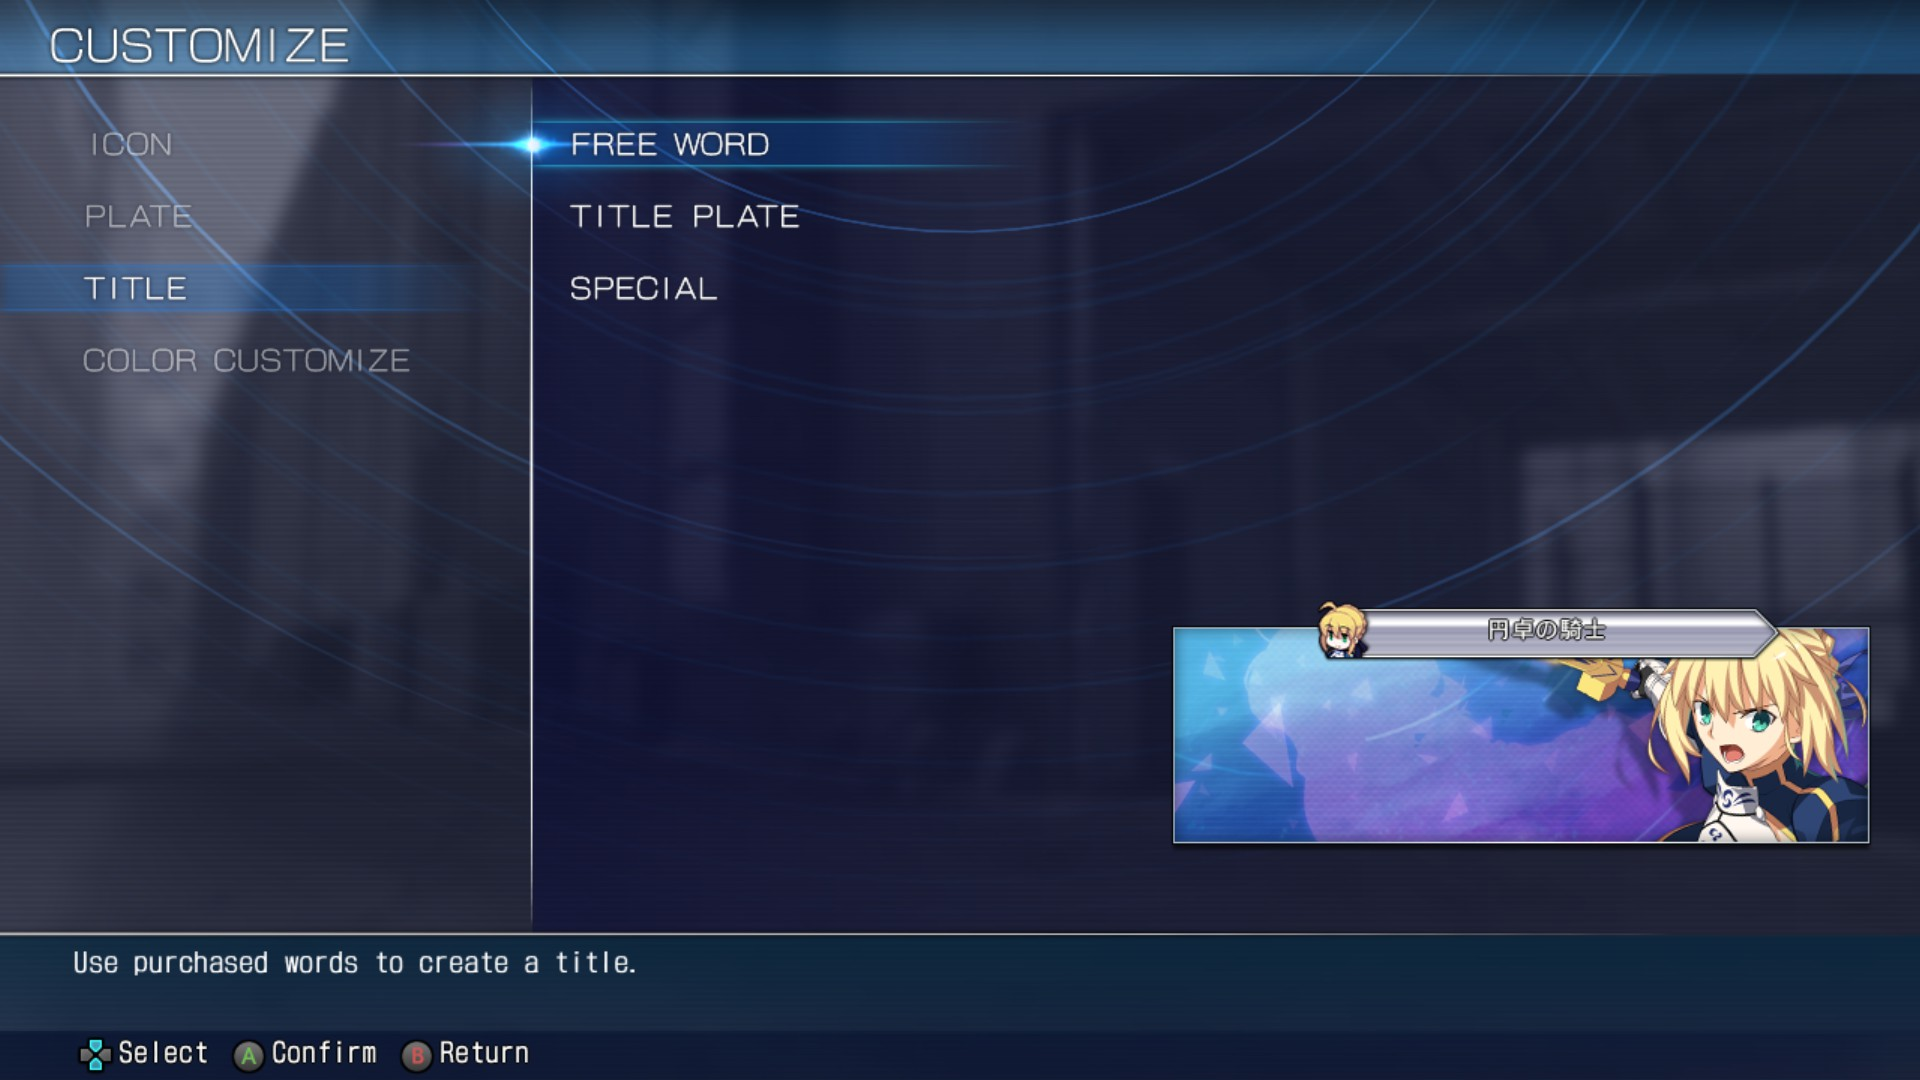 MELTY BLOOD: TYPE LUMINA - Complete All Achievements Guide - Customize - 9415E16